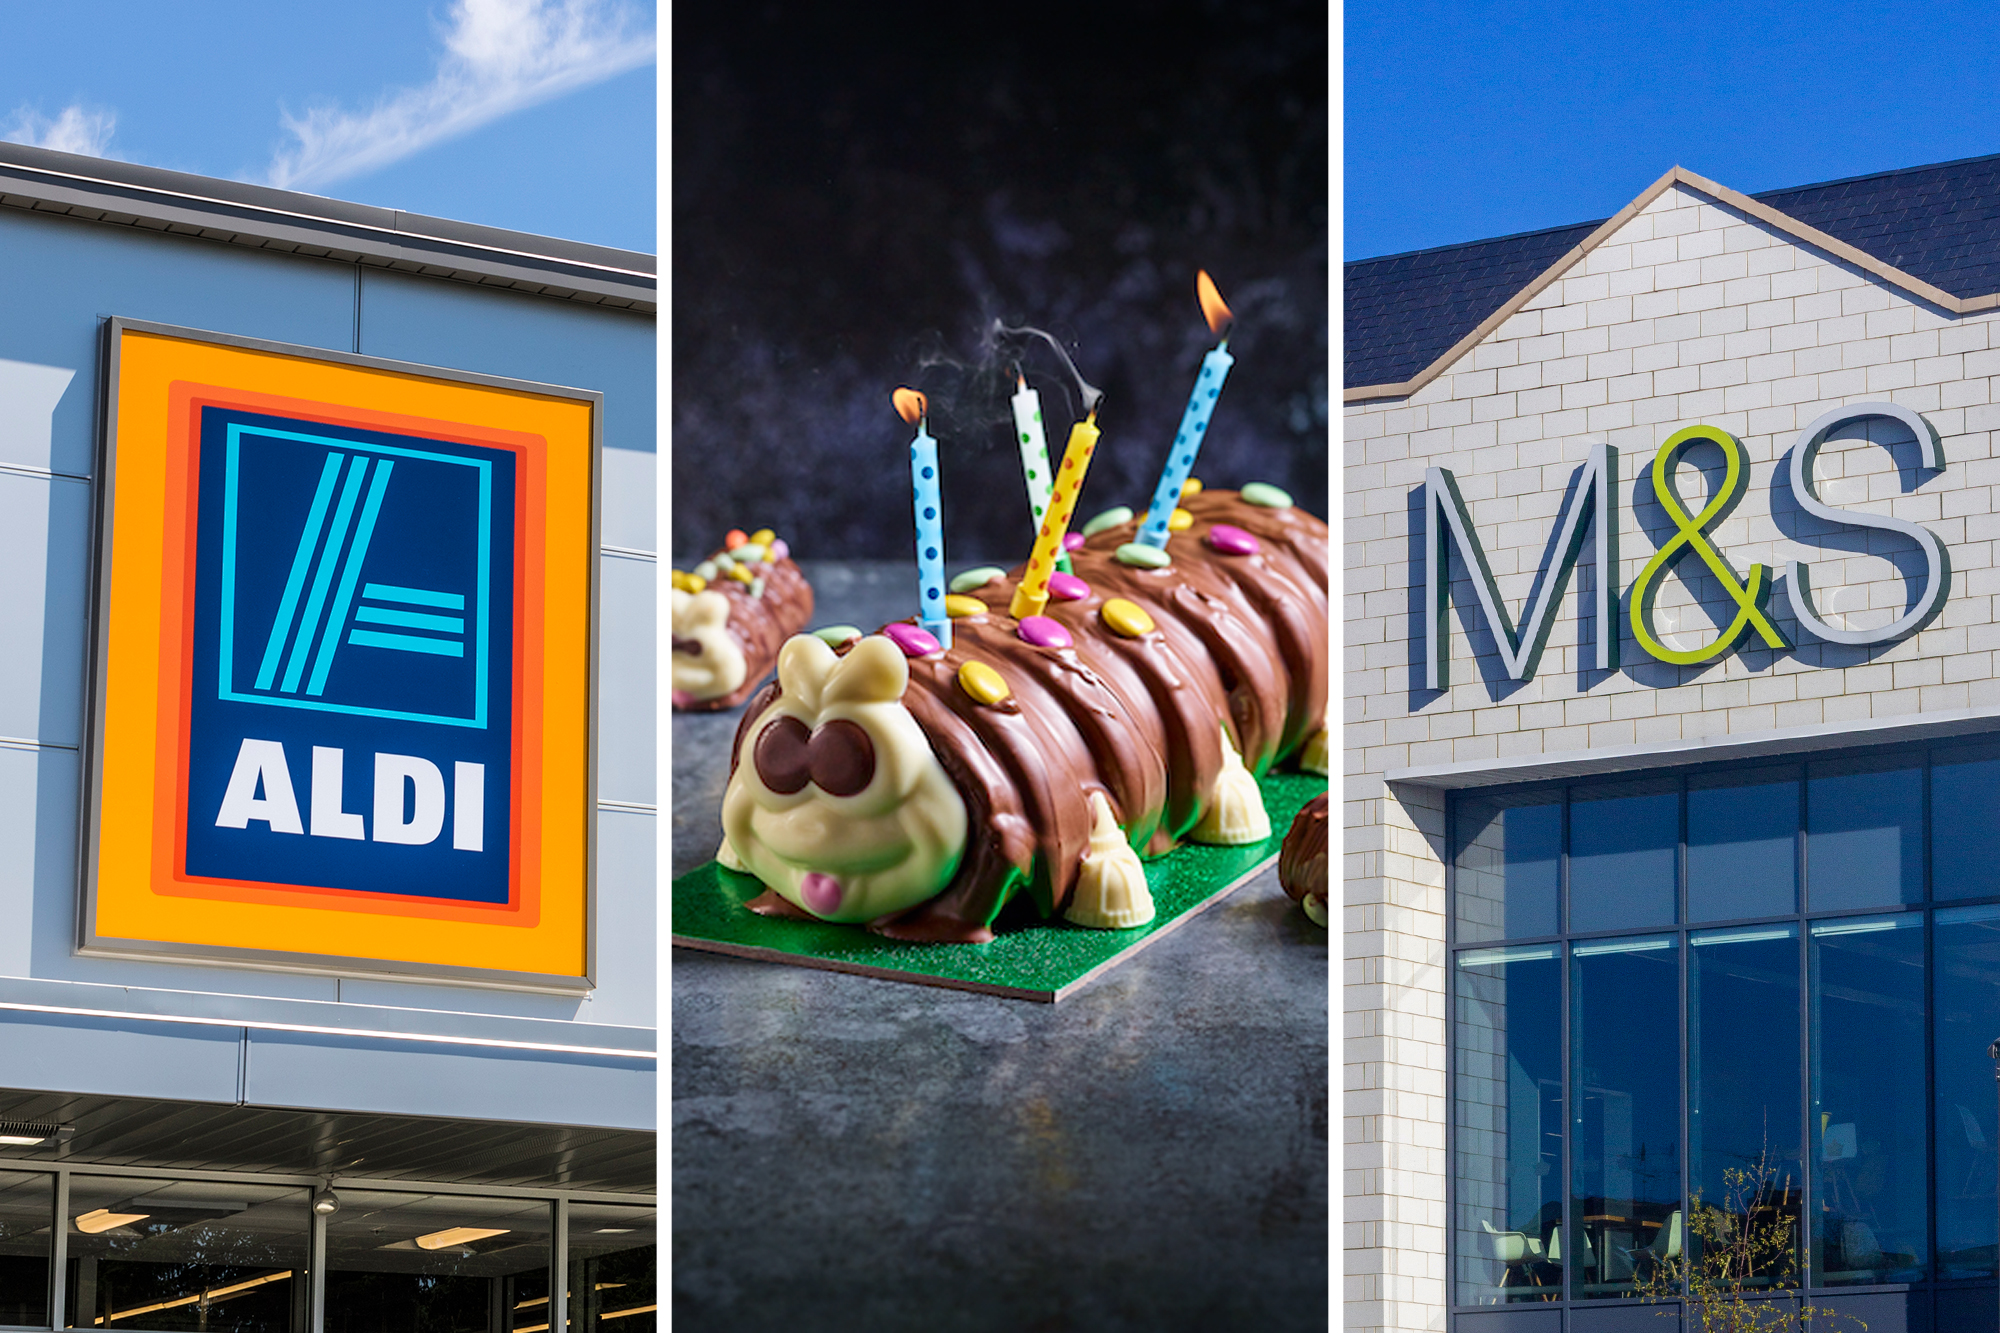 Aldi sign, M&S caterpillar cake, M&S sign